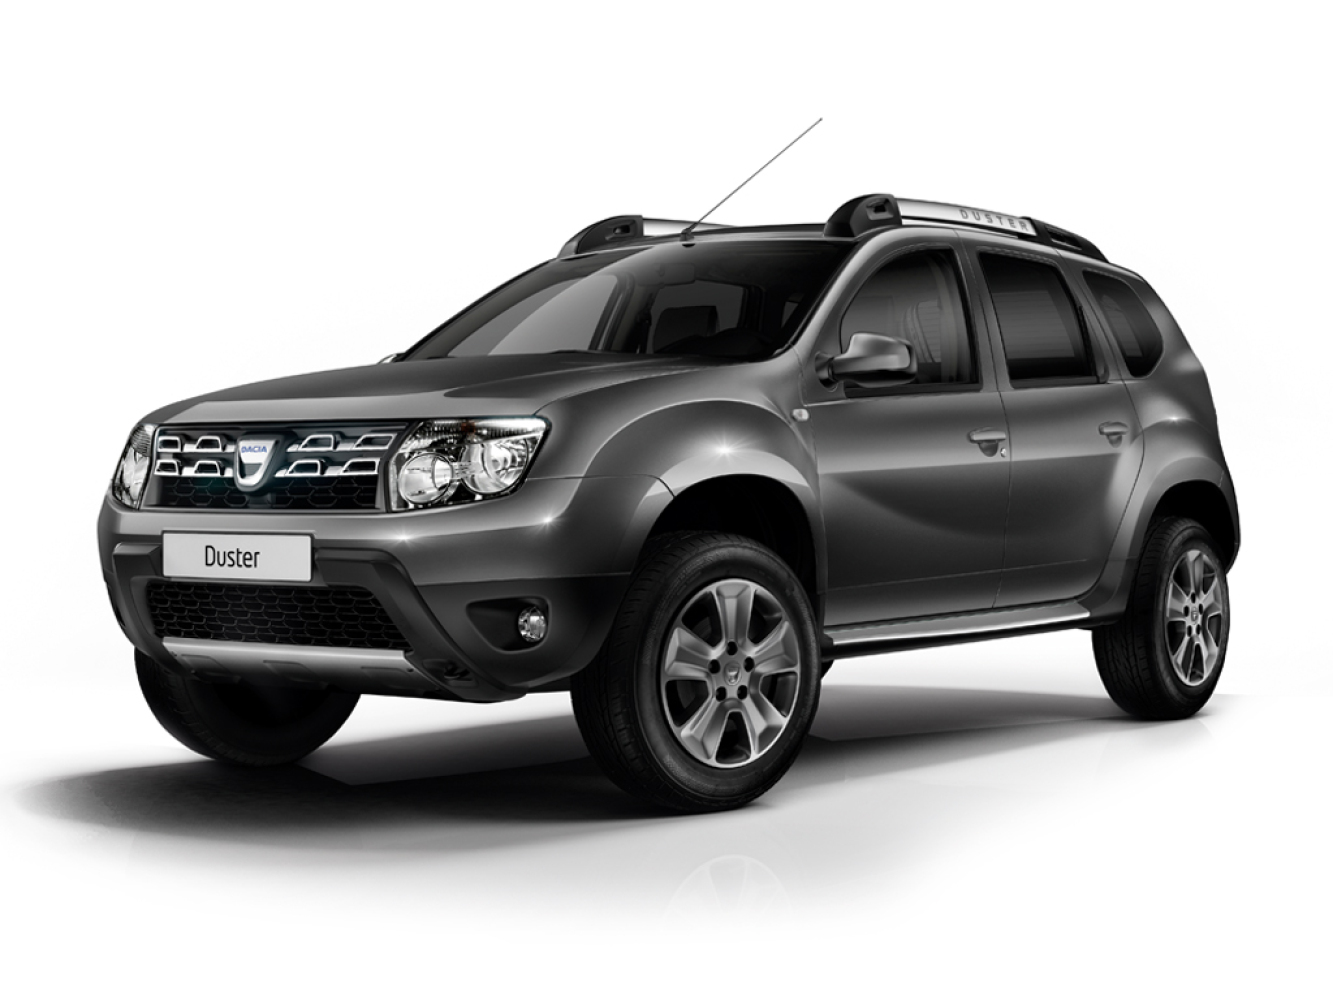 new dacia duster diesel 1 5 dci 110 ambiance commercial. Black Bedroom Furniture Sets. Home Design Ideas